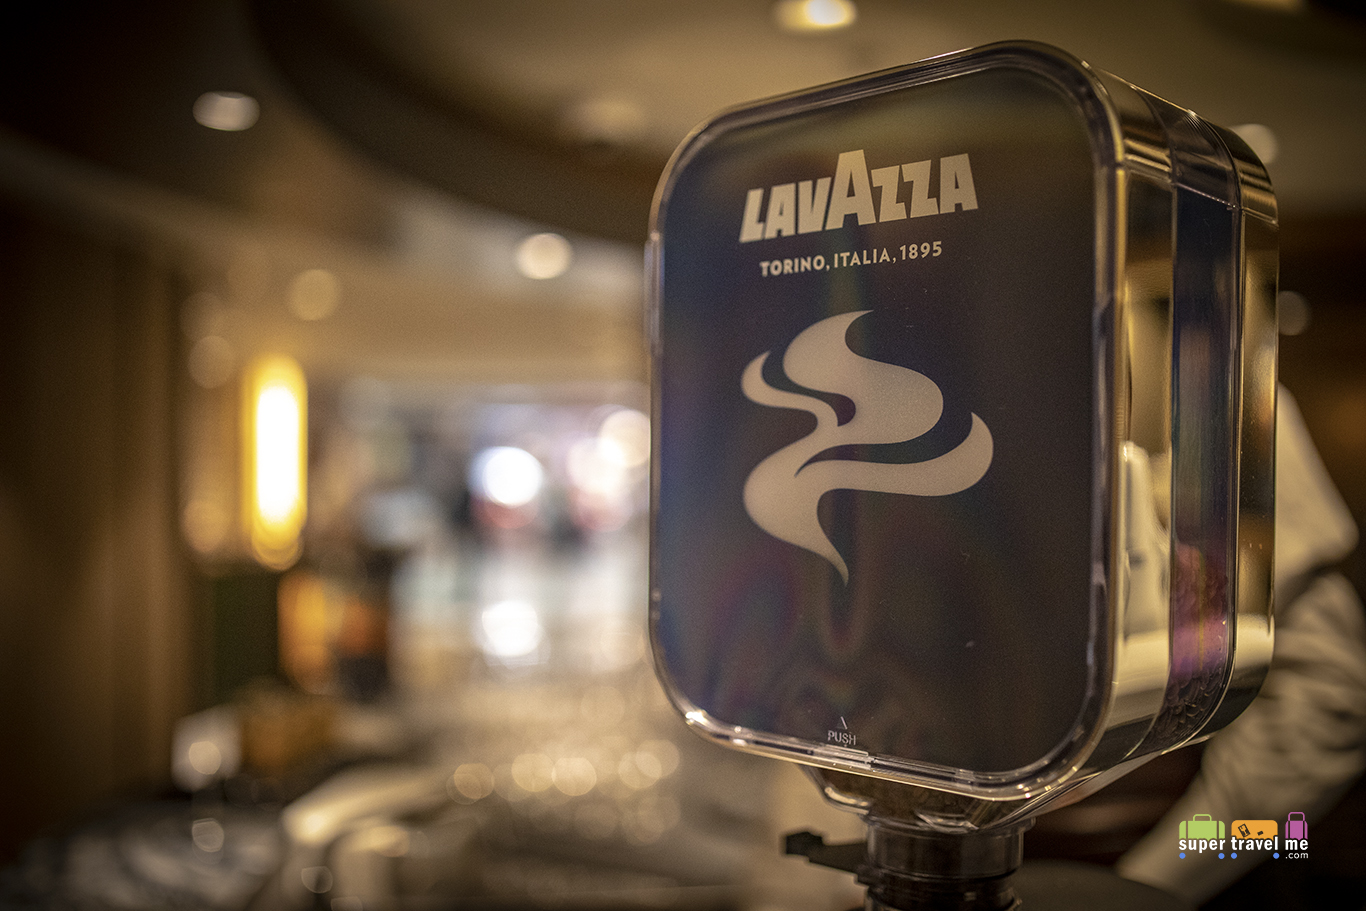 Lavazza Coffee served at AeroBar in Plaza Premium First Hong Kong